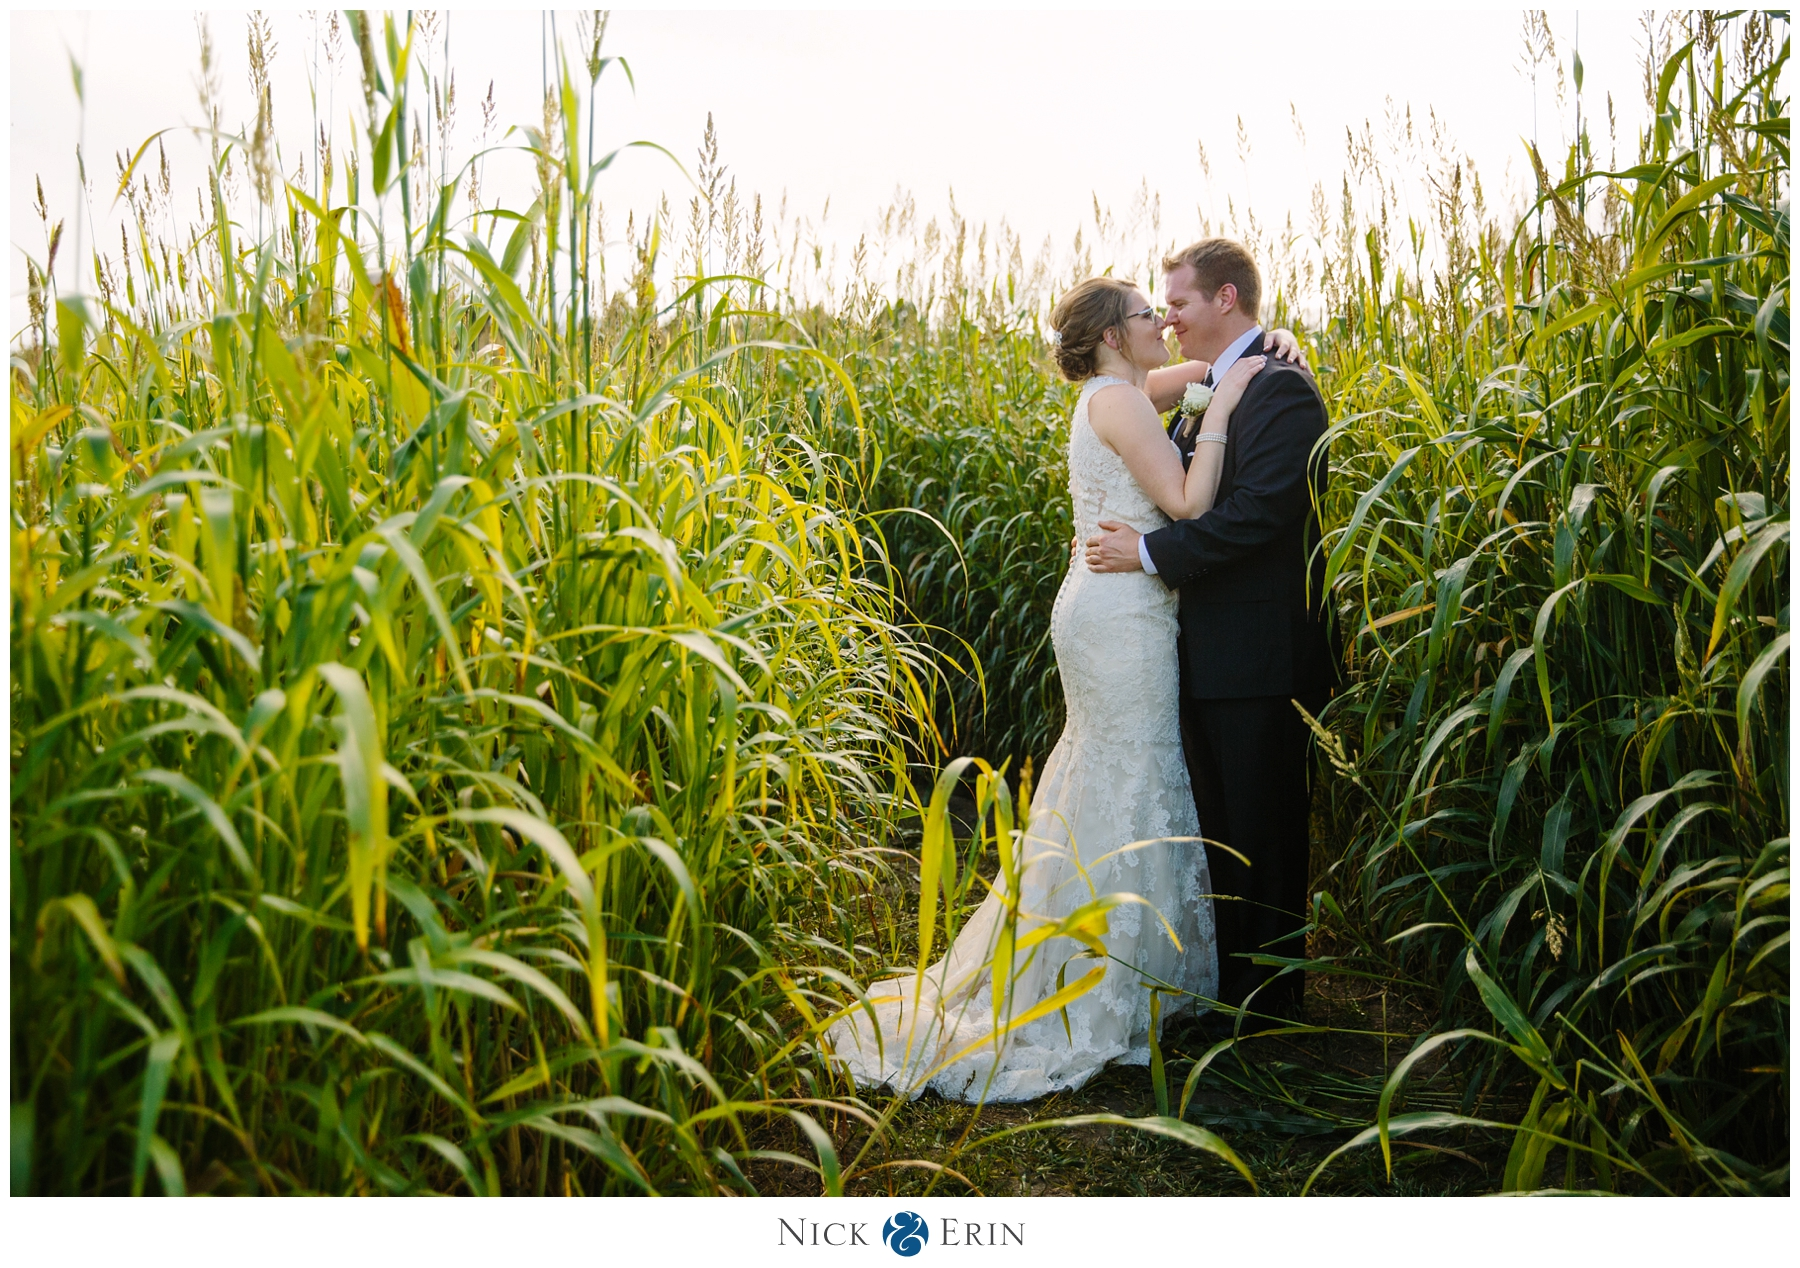 donner_photography_iowa-wedding_katie-chris_0028